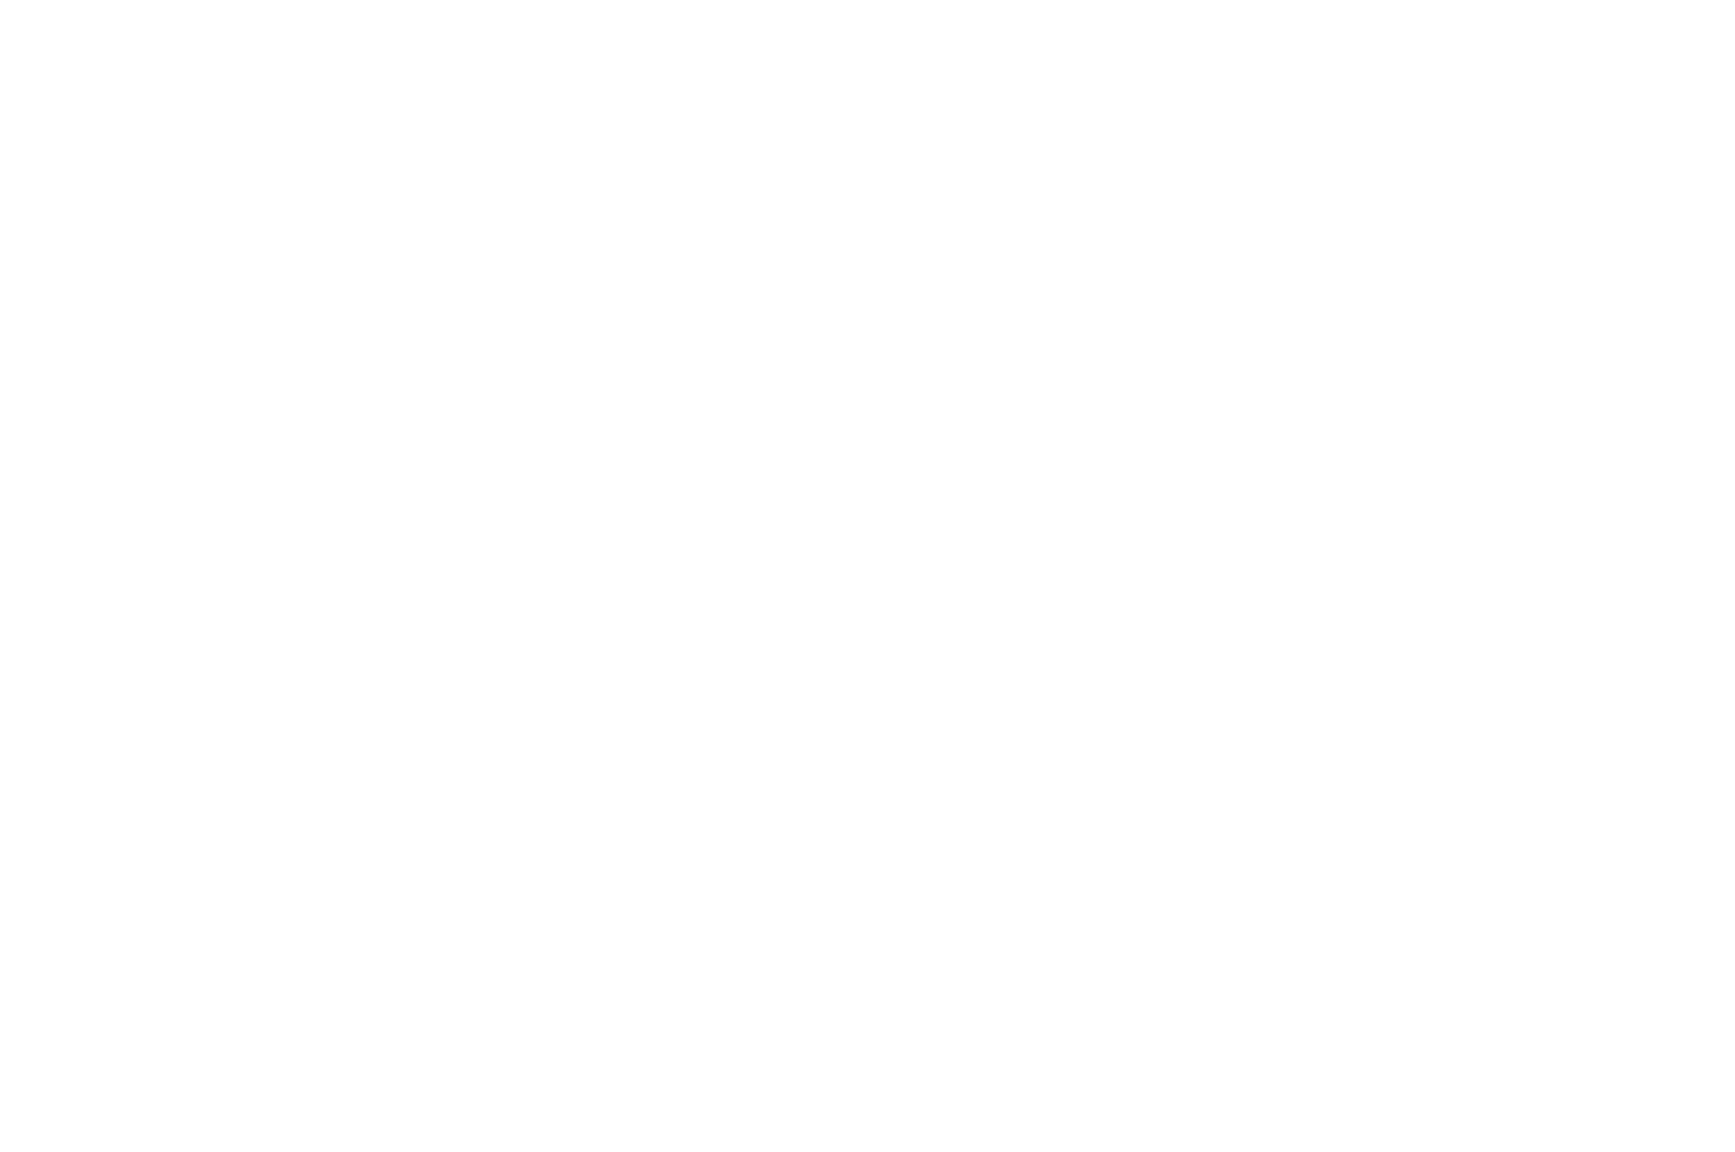 Spectrum FF Martha's Vineyard, MA - April 27, 2019